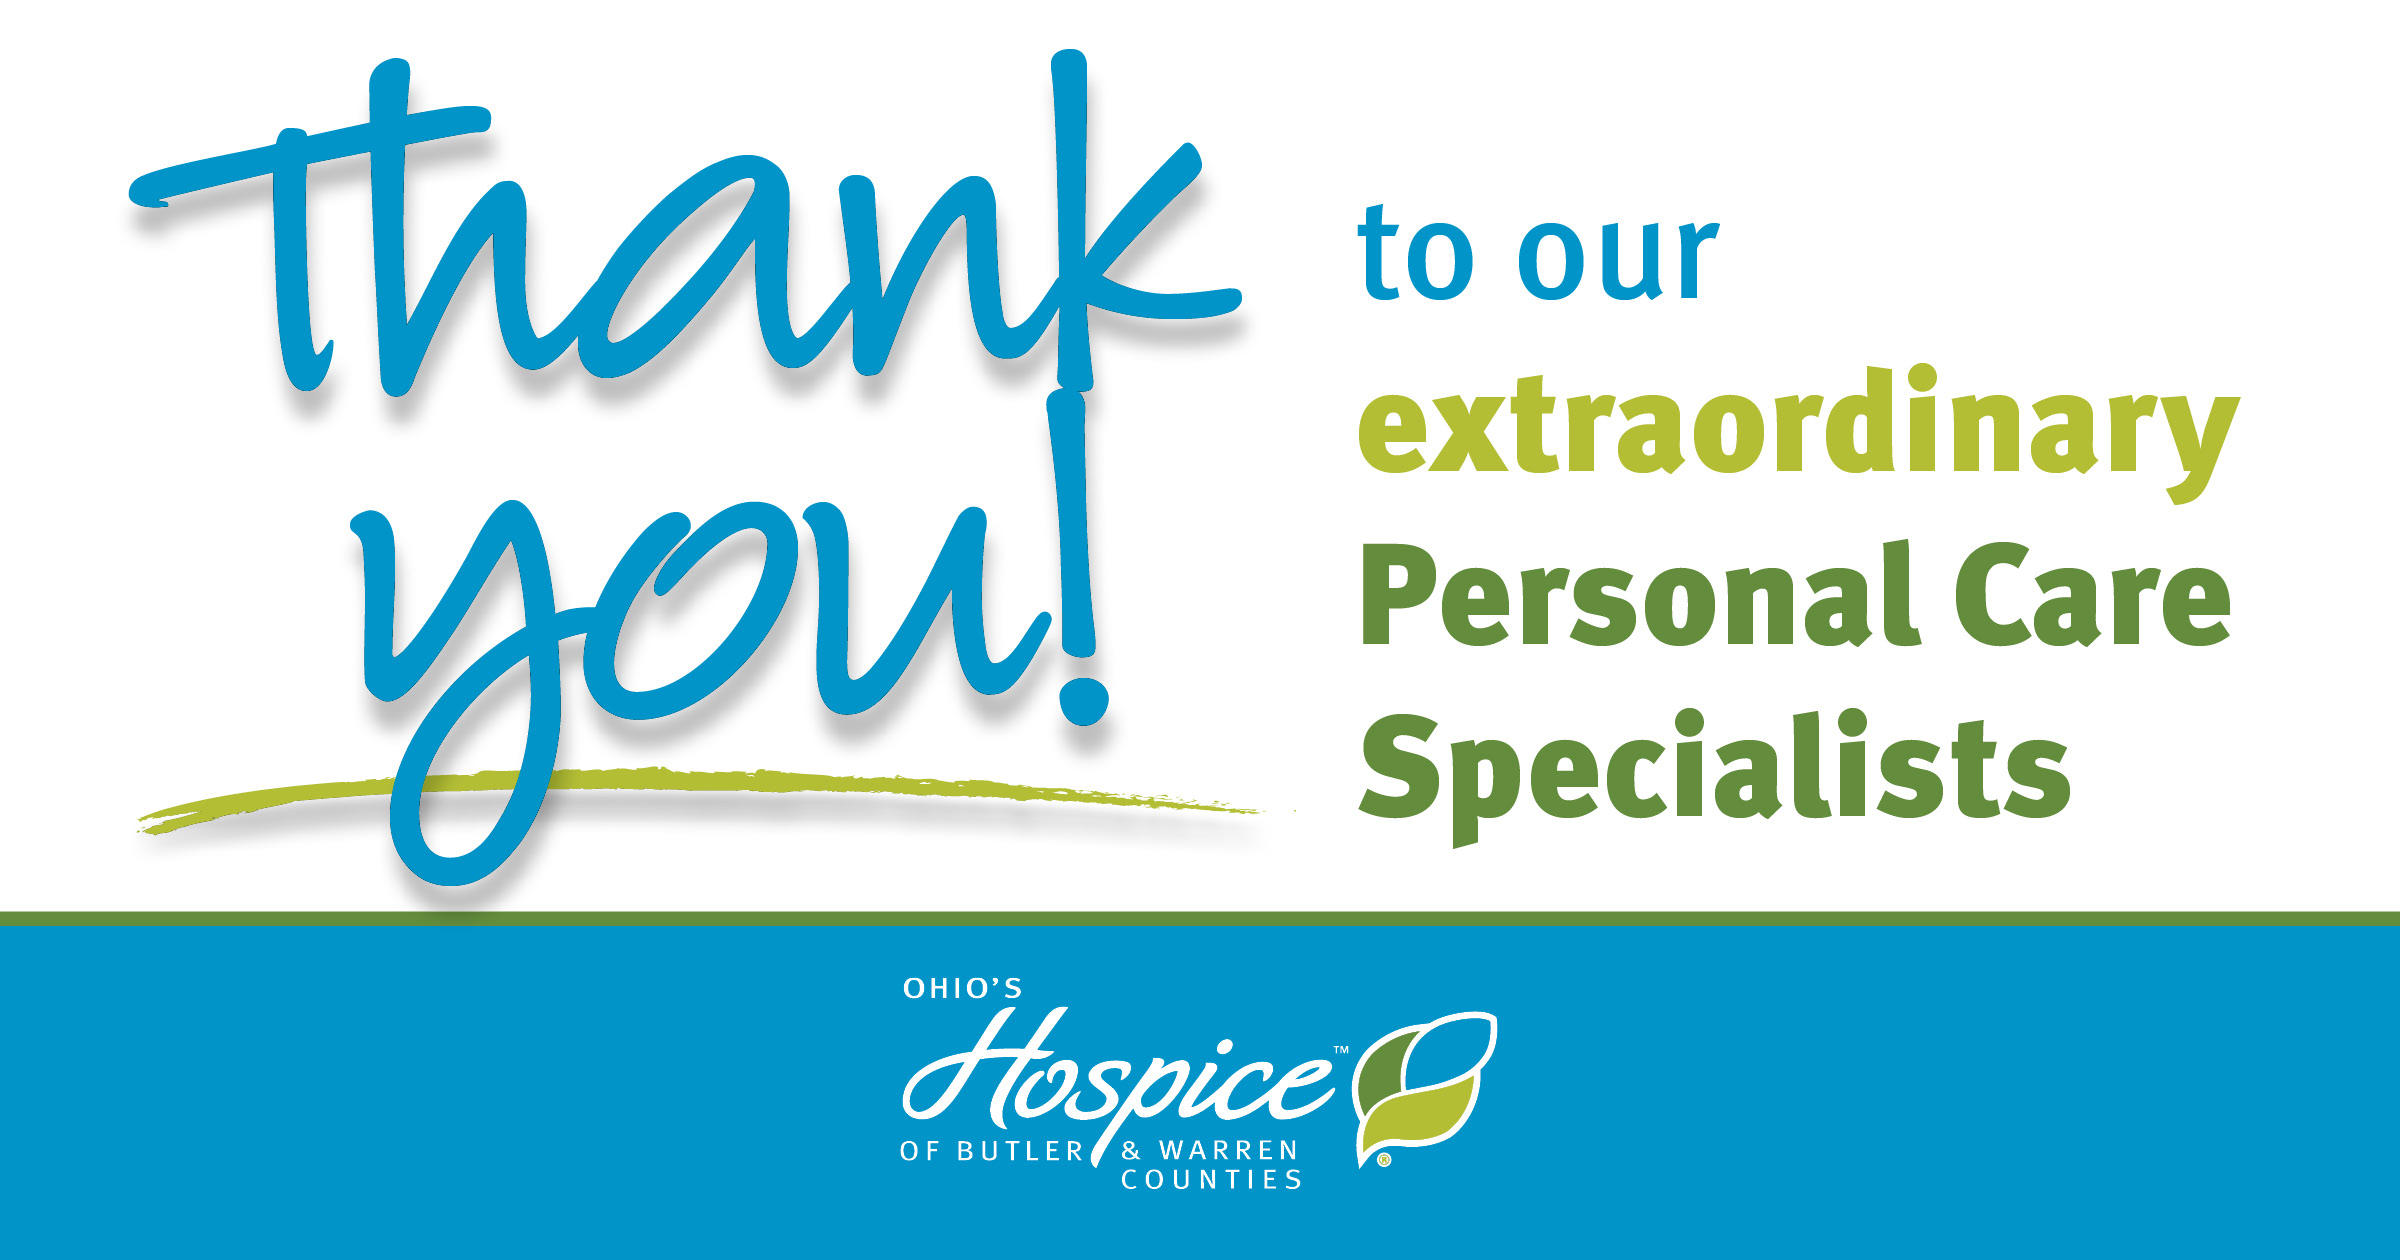 Personal Care Specialists